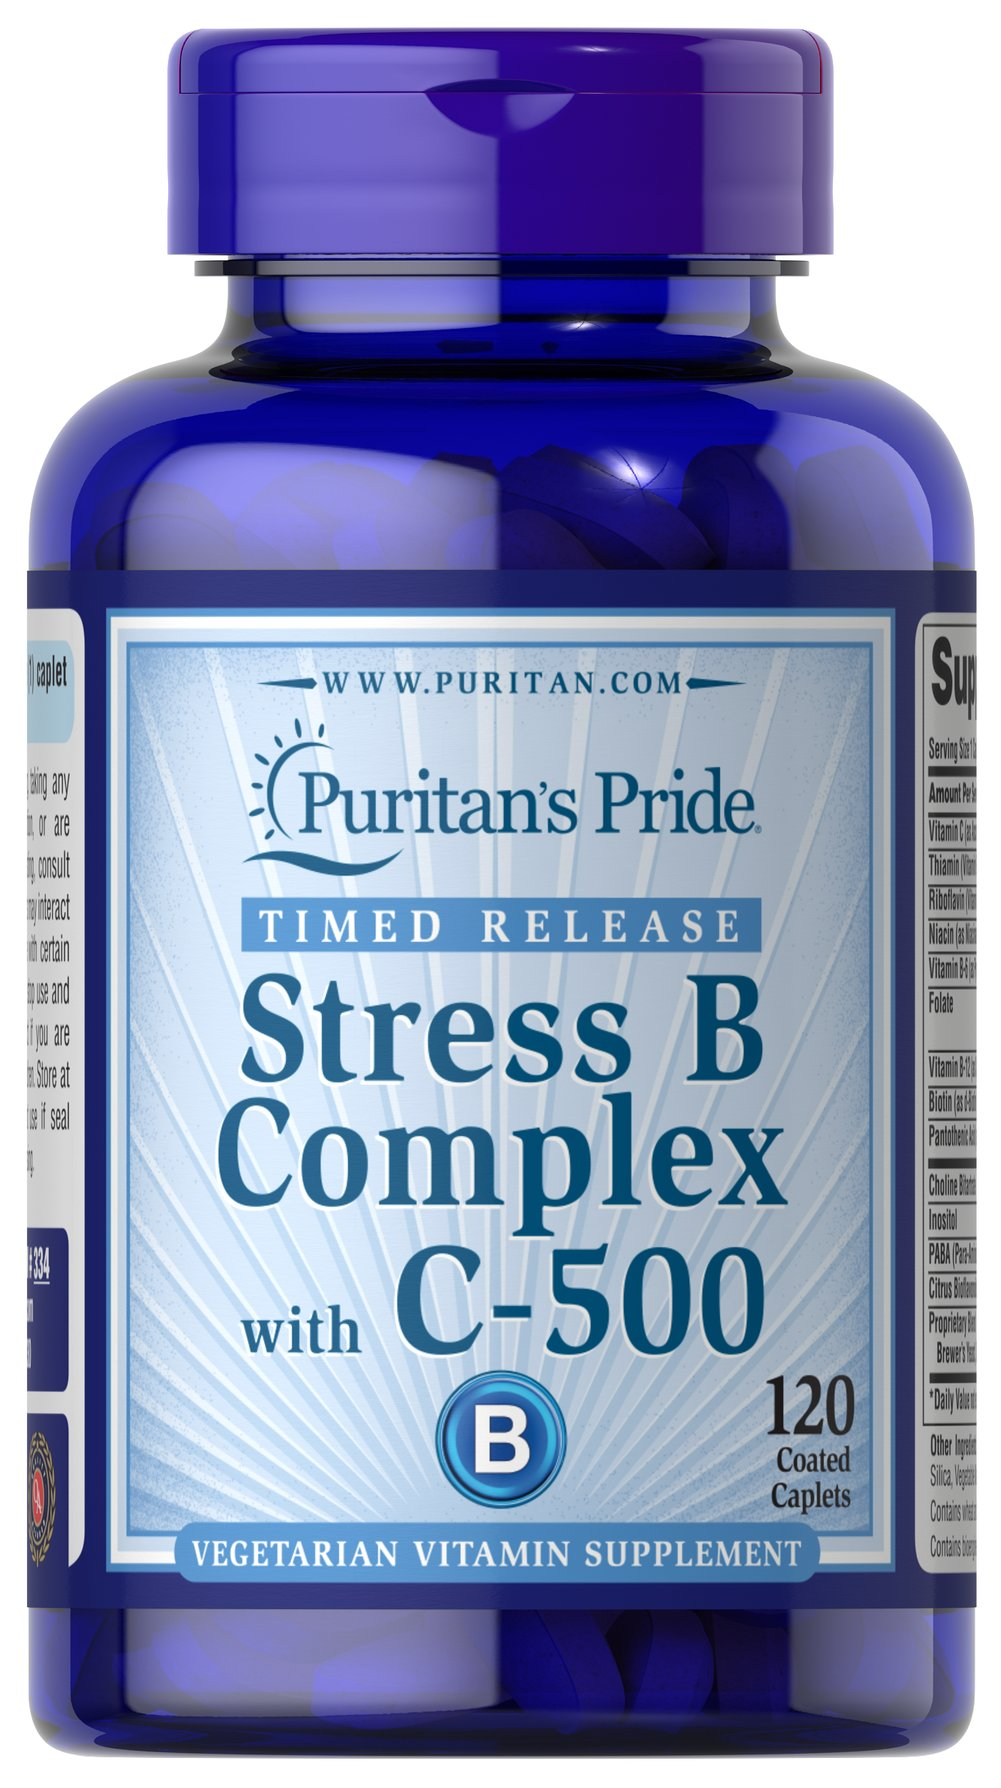 Stress Vitamin B-Complex with Vitamin C-500 Timed Release <p>Timed-Release Stress Vitamin B Complex with Vitamin C 500 provides an excellent source of B Complex vitamins to help safeguard a sufficient daily intake.** The B Vitamins, which are essential for the maintenance of healthy nervous tissue, each play a role in energy metabolism in the body.** The 500 mg of Vitamin C is added to help support immune function.**</p> 120 Caplets  $39.99